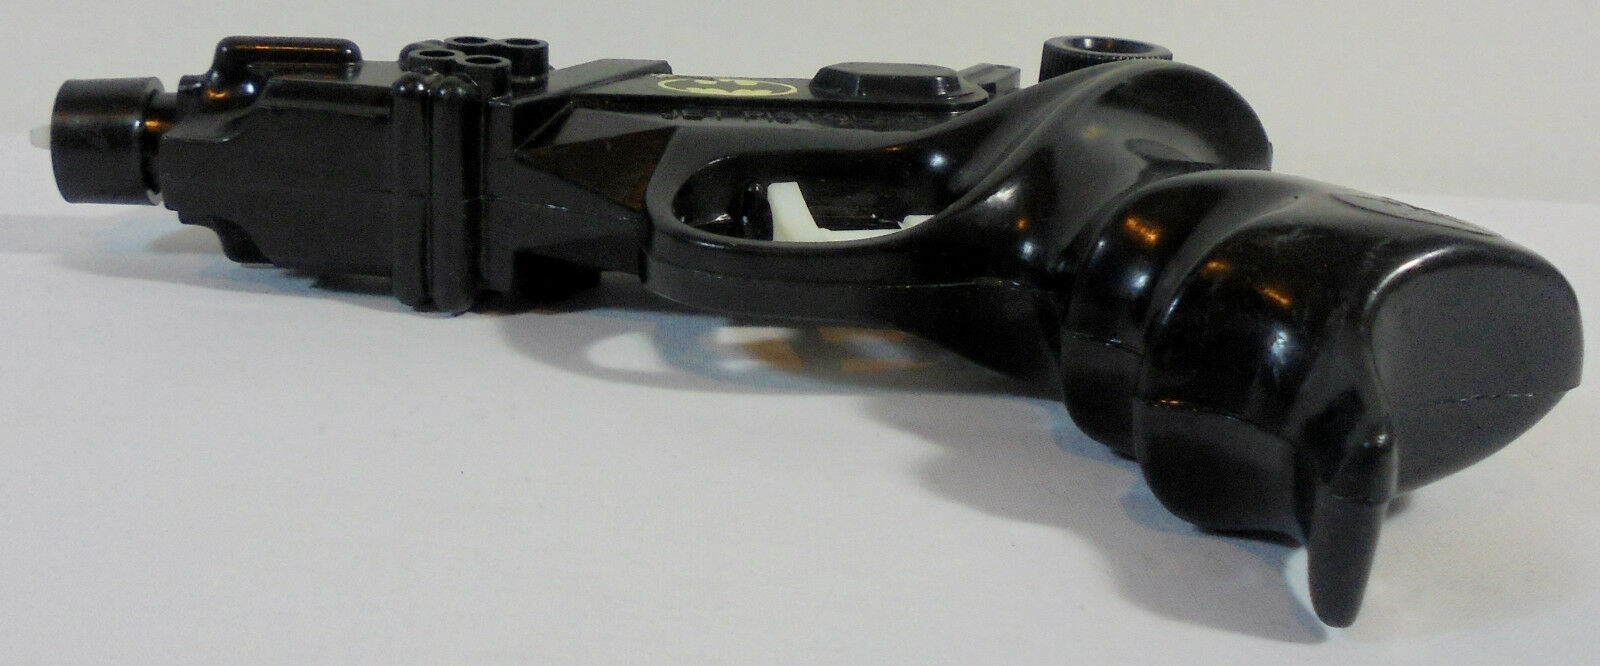 TSIOTAS GREEK BATMAN 80's SQUIRTER PLASTIC PLASTIC PLASTIC WATER GUN JET PISTOL MADE IN GREECE ff6907